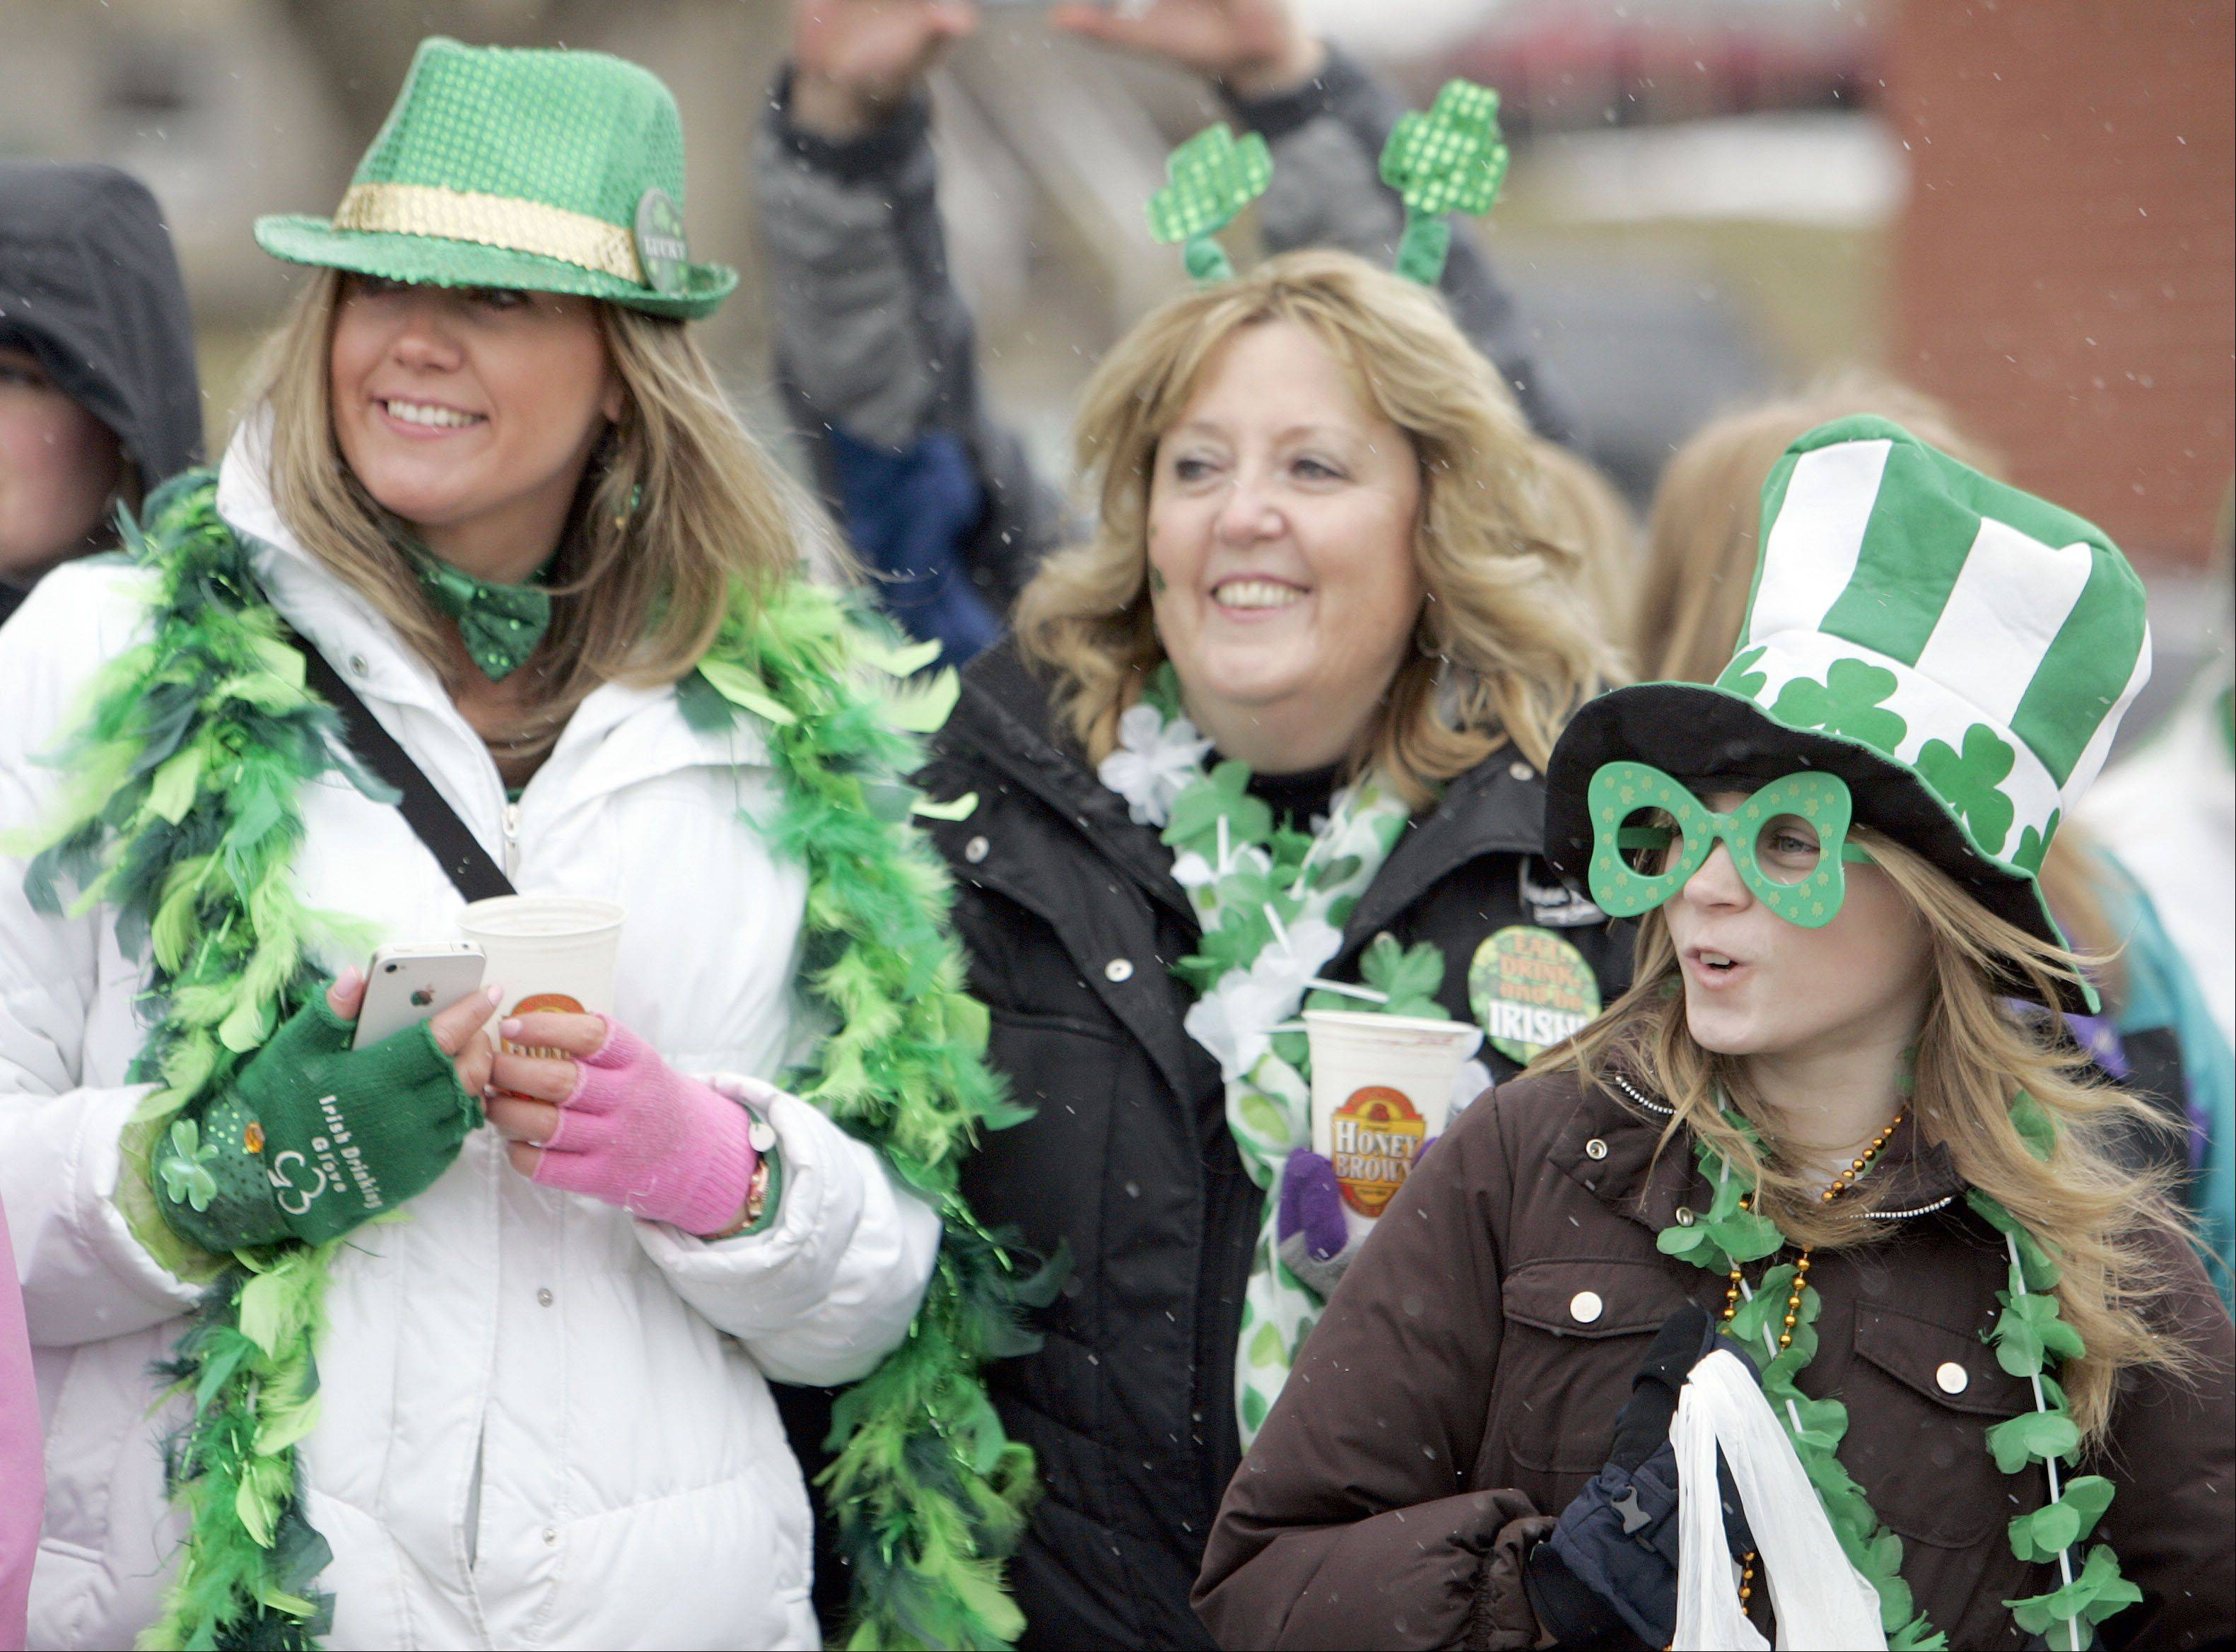 Three generations -- including Carrie Greenhagel, left, Peggy Greenhagel and Morgan Payne, 11, all of Huntley, braved the 30 degree weather Saturday to watch the Thom McNamee Memorial St. Patrick's Day Parade in East Dundee.